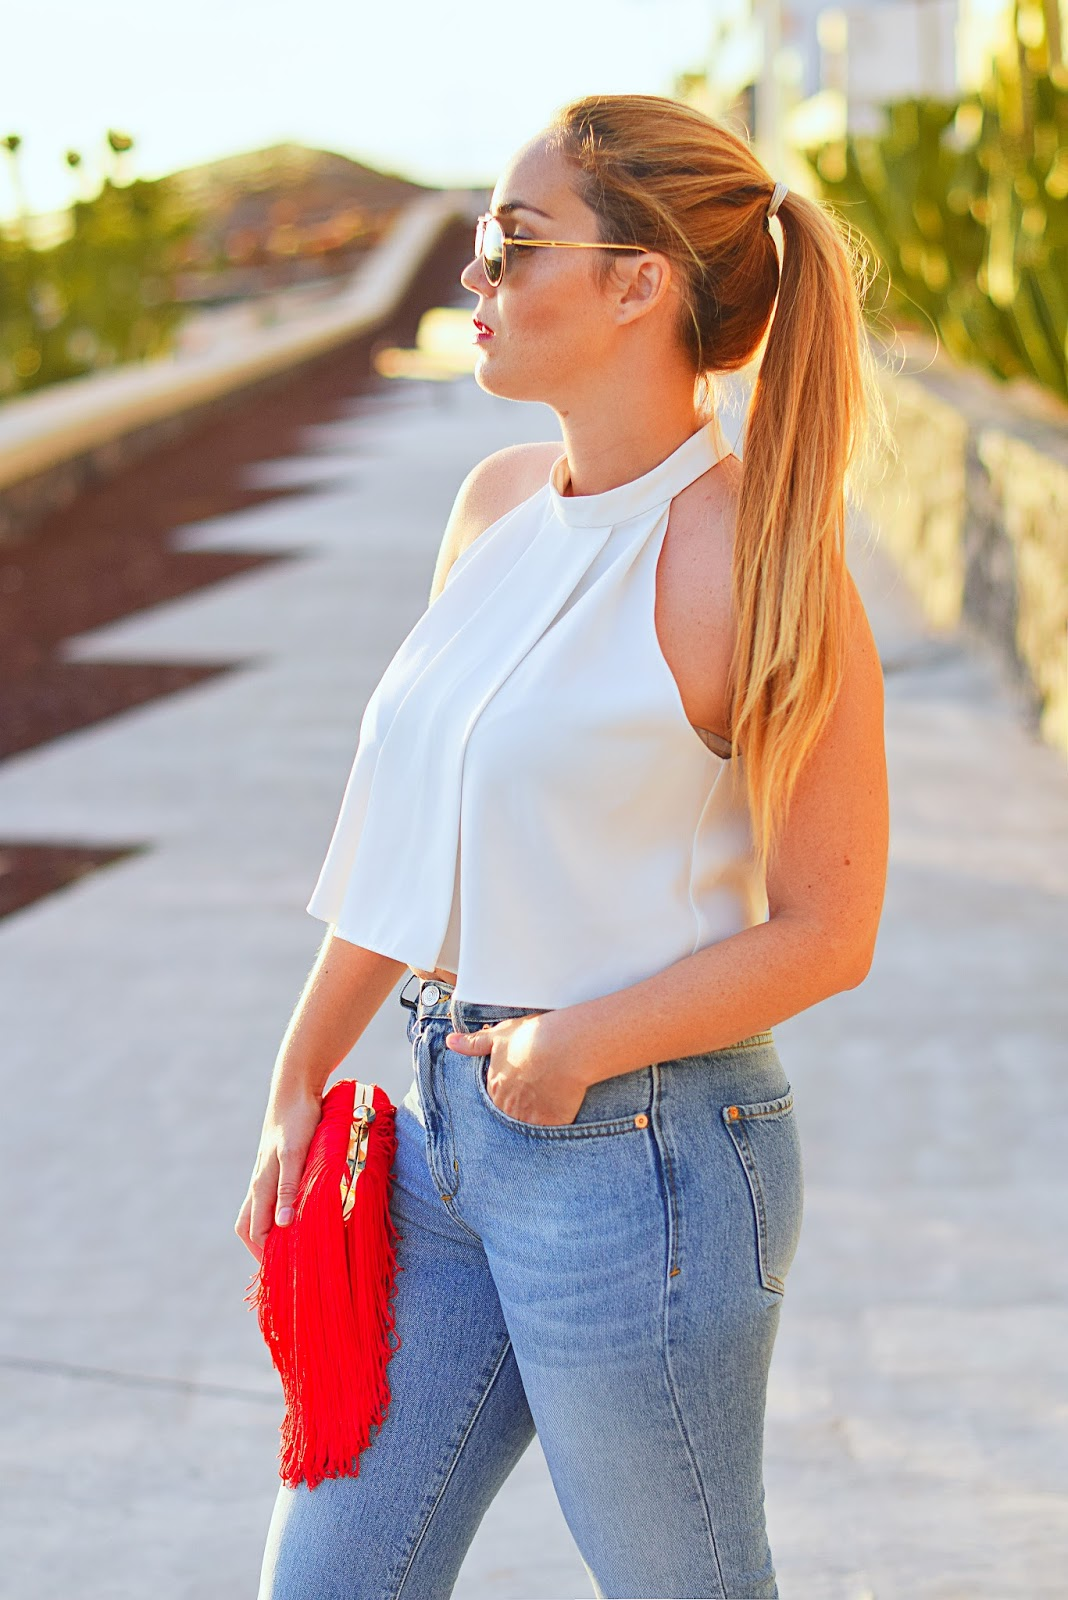 nery hdez, Hindsight Vintage , crop top, boyfriend jeans, aviator sunglasses, shoes with tassel